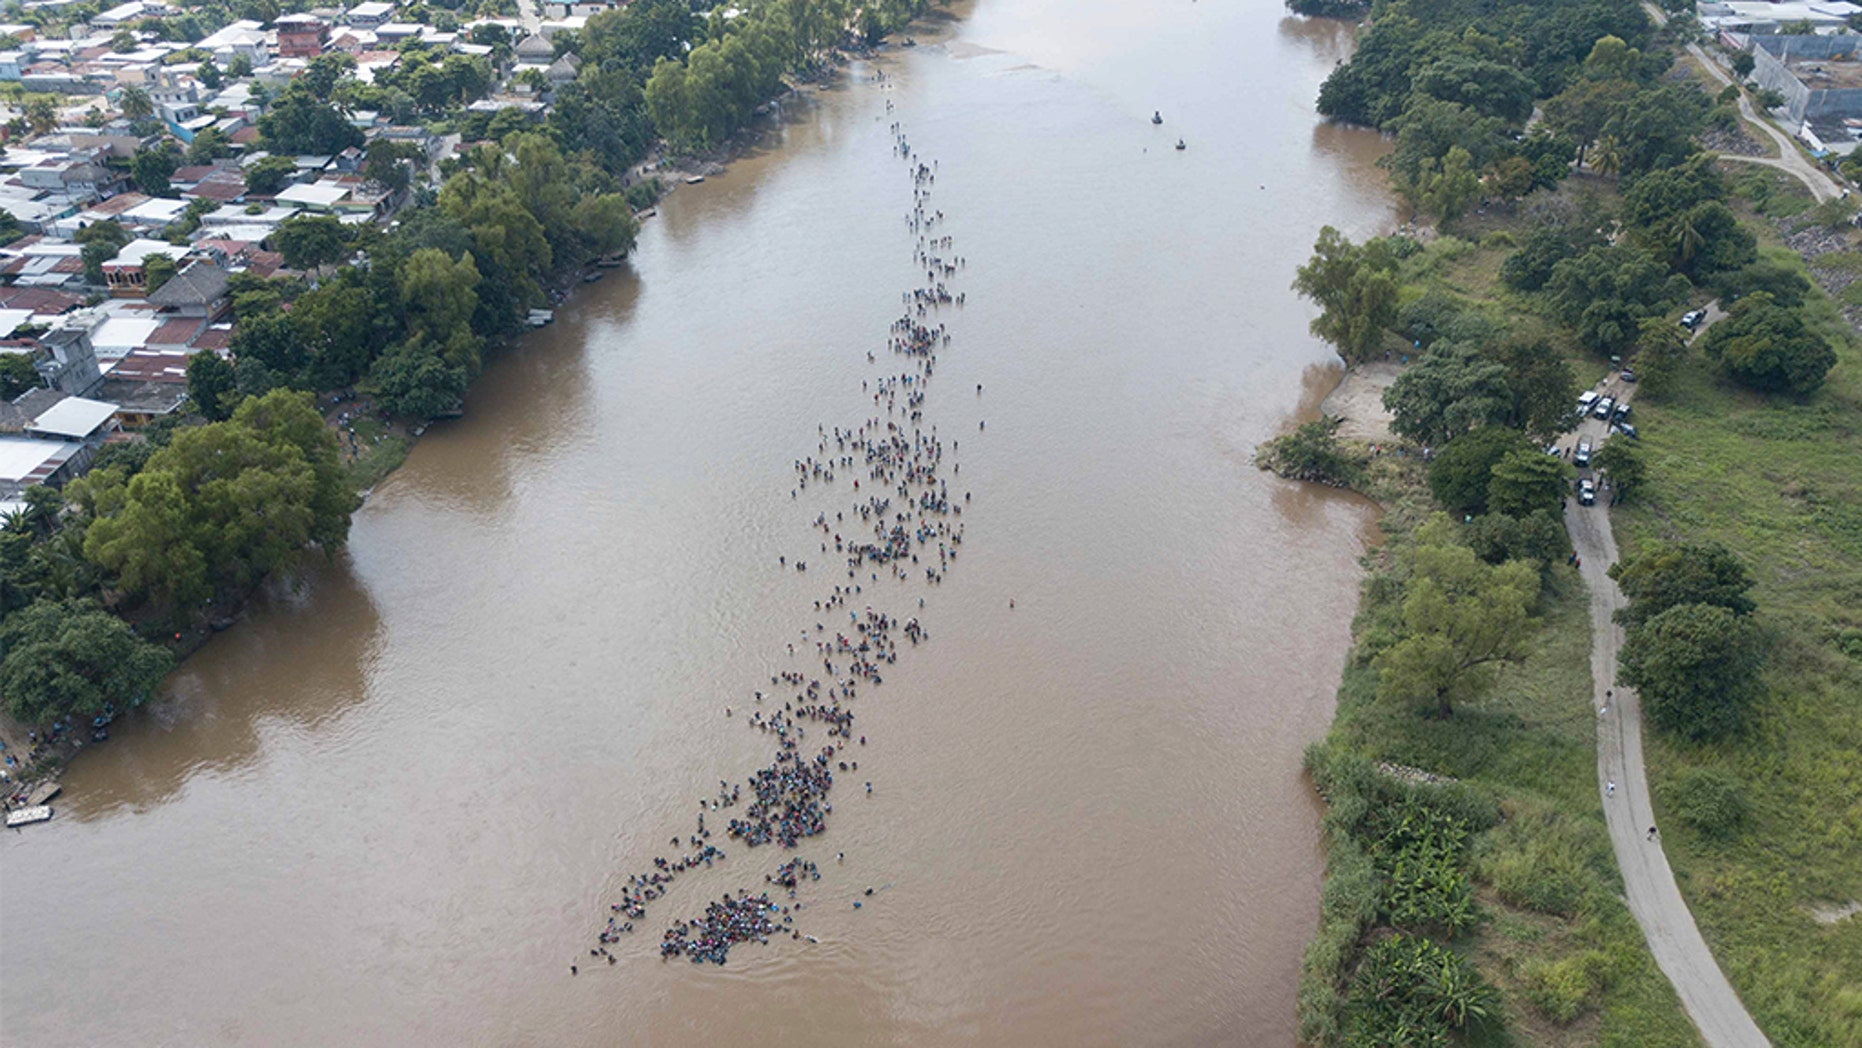 A new group of Central American migrants bound for the U.S border, wading across the Suchiate River, that connects Guatemala and Mexico, in Tecun Uman, Guatemala. (AP Photo/Santiago Billy)